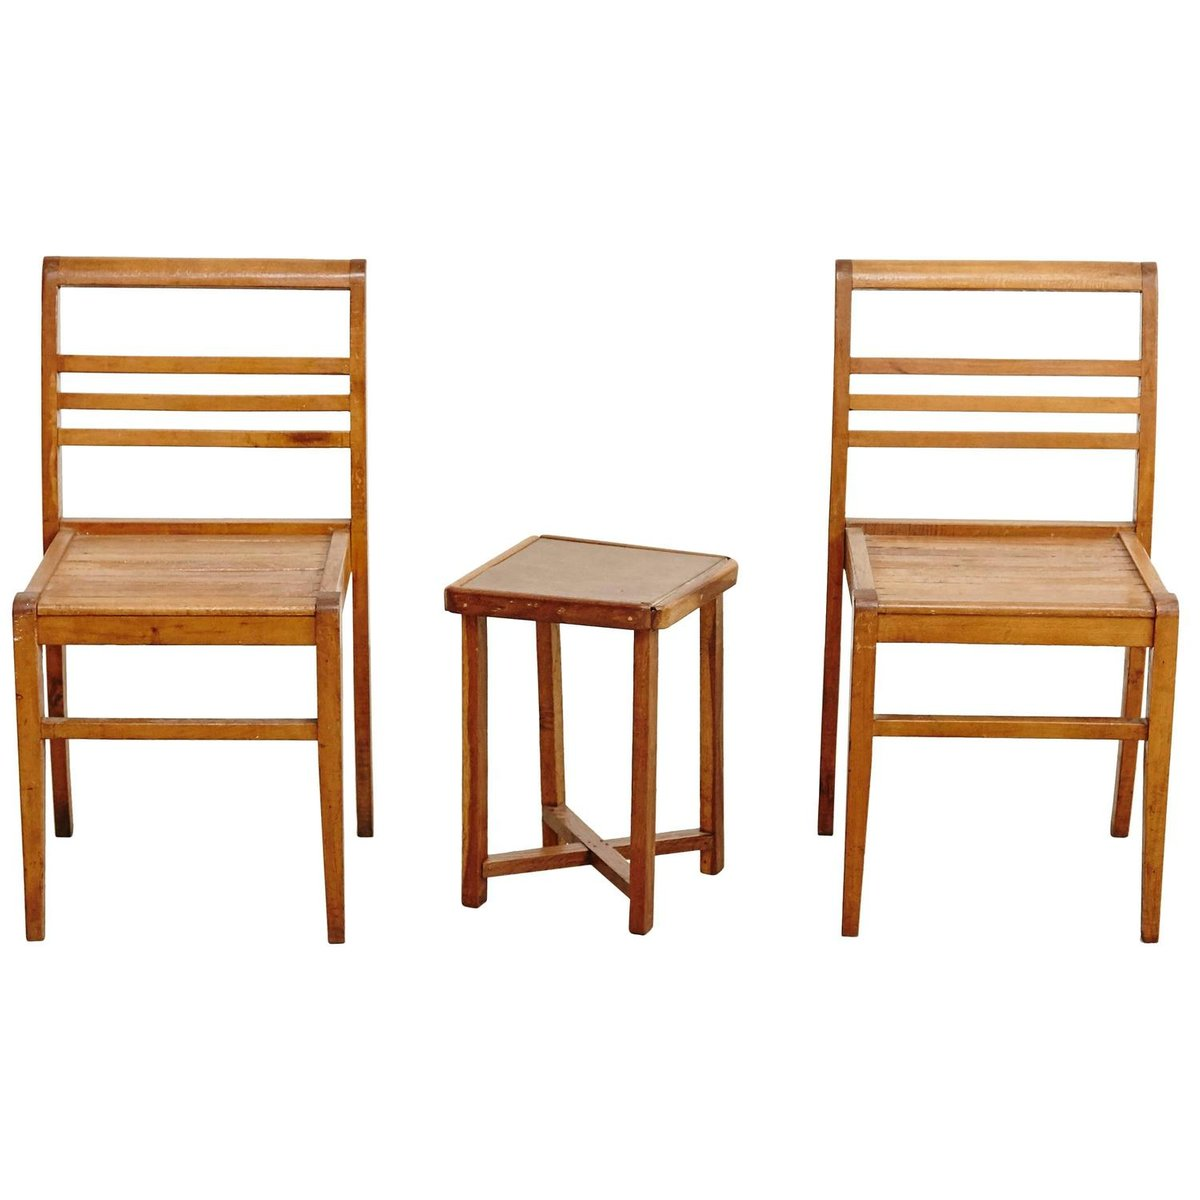 French Oak Chairs and Side Table by Rene Gabriel  1940s for sale at Pamono. French Oak Chairs and Side Table by Rene Gabriel  1940s for sale